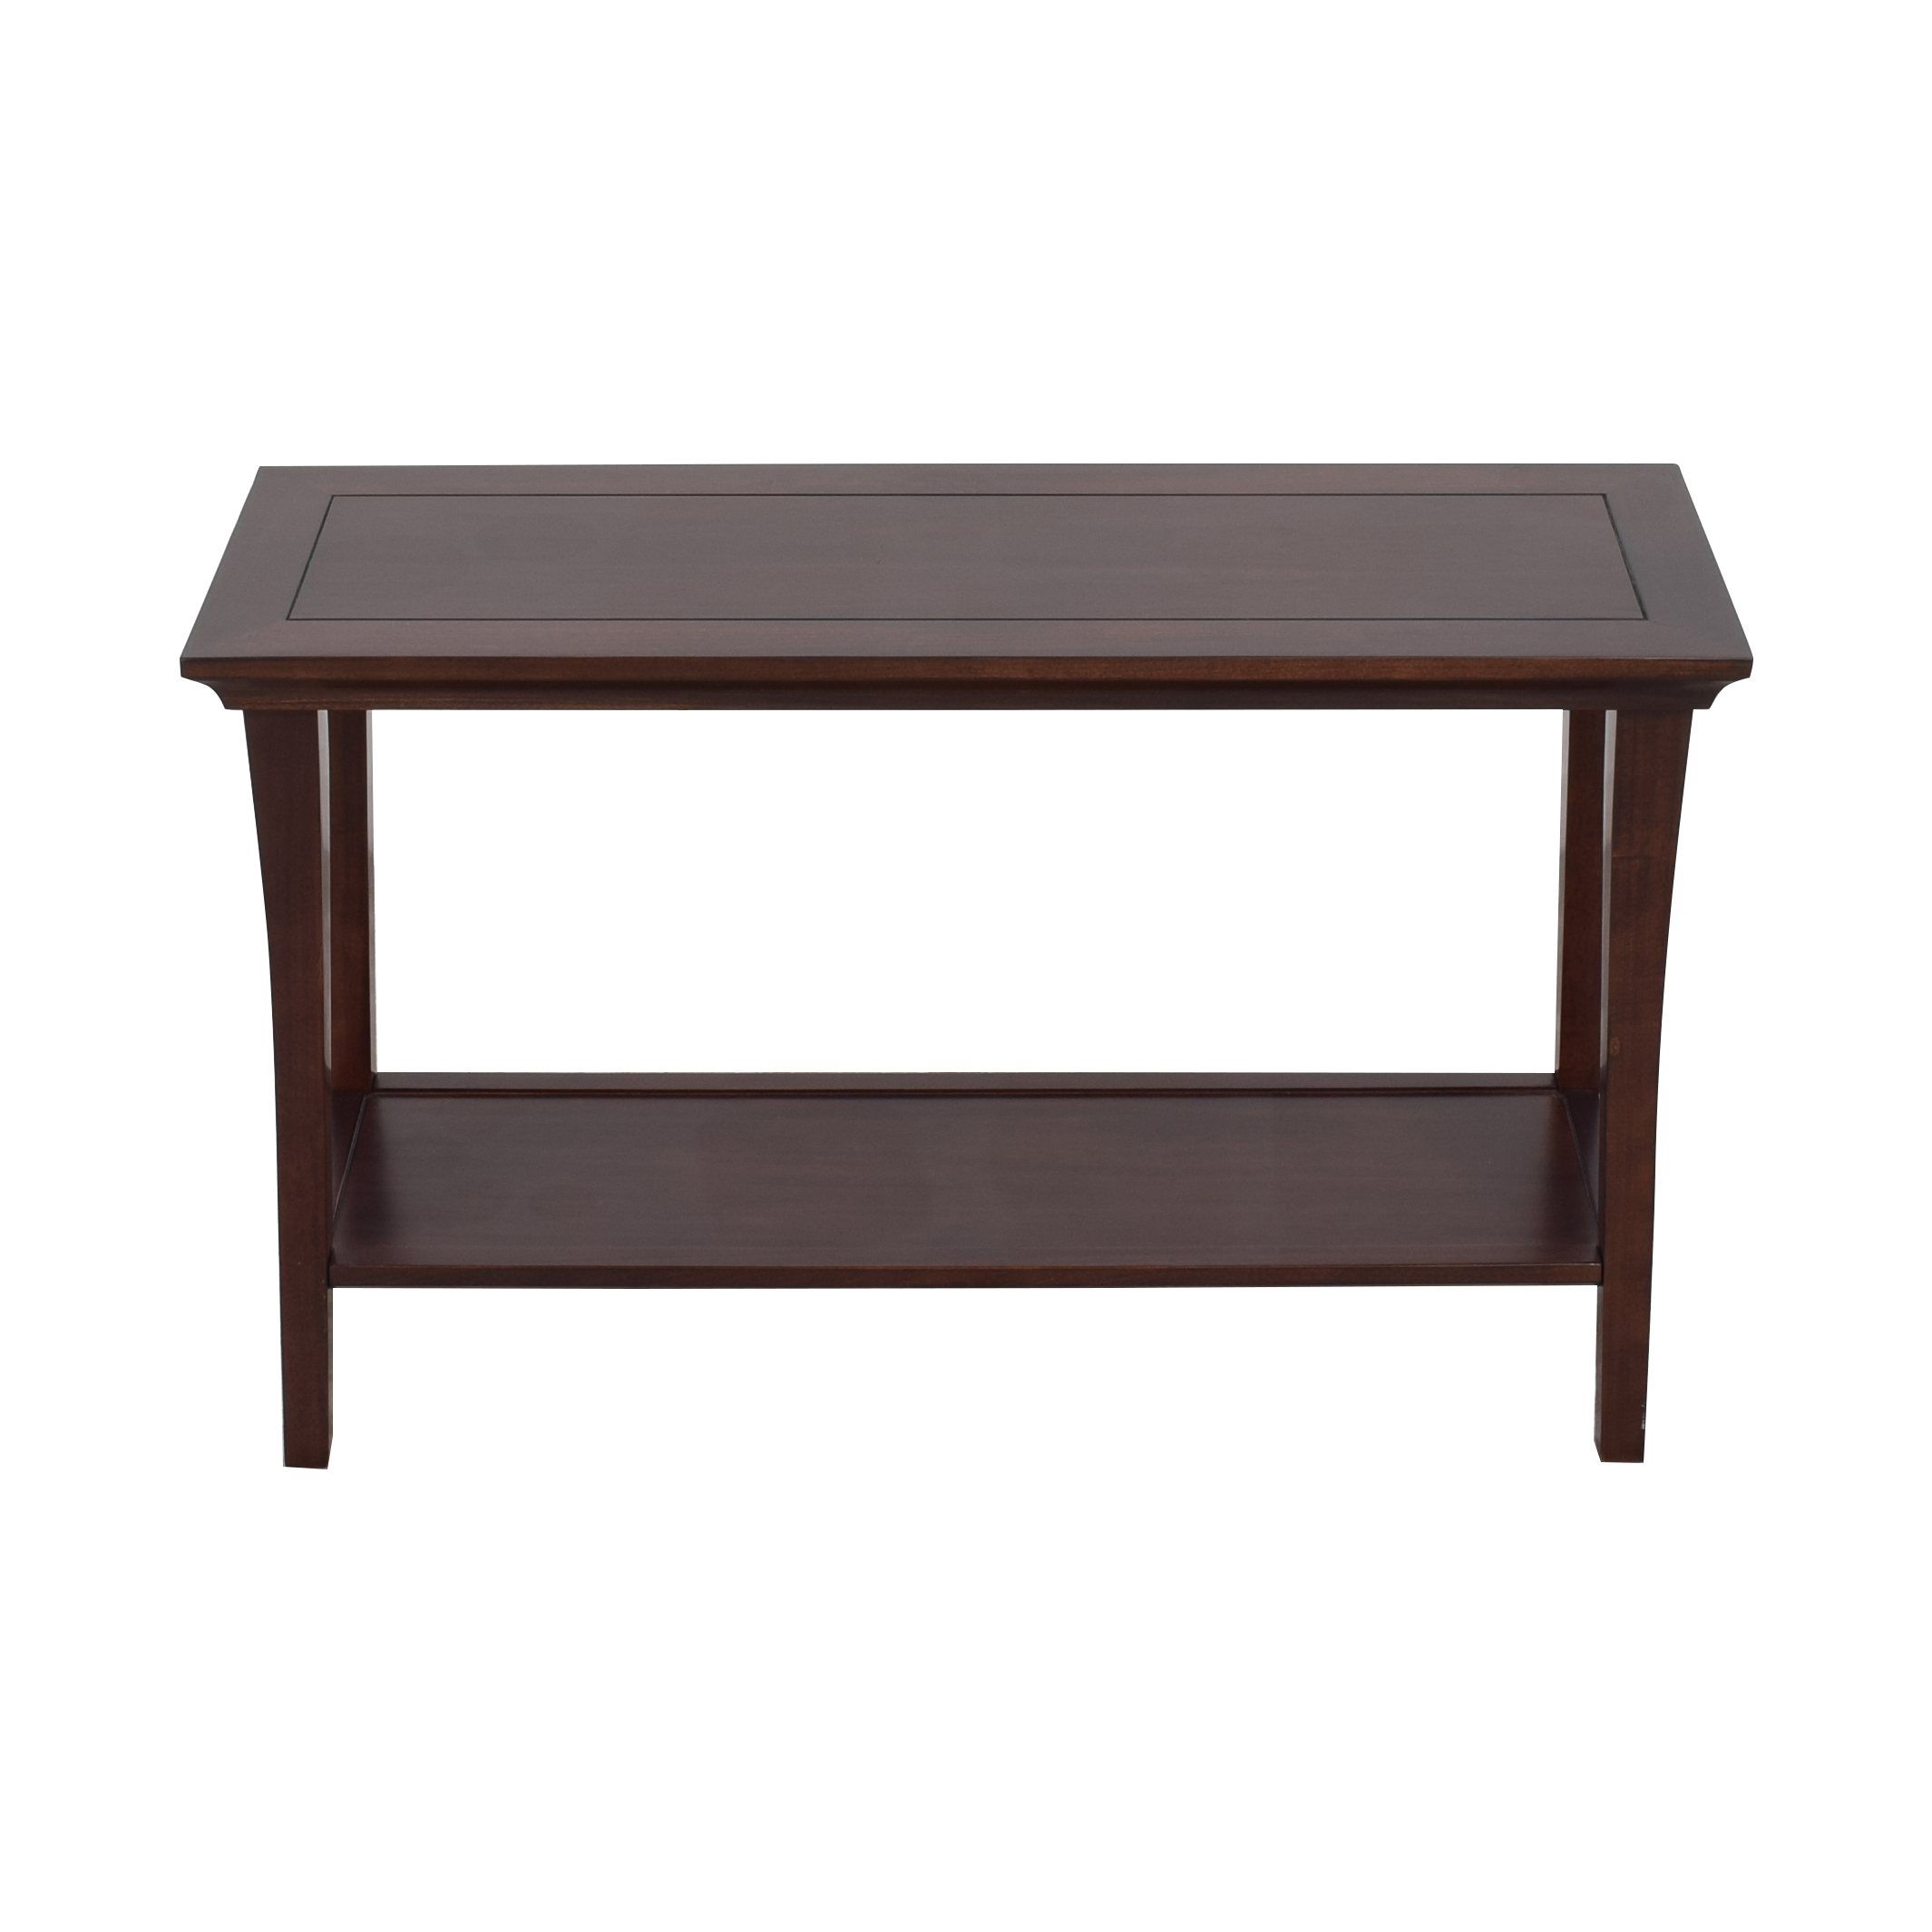 Pottery Barn Two Level Console Table / Accent Tables